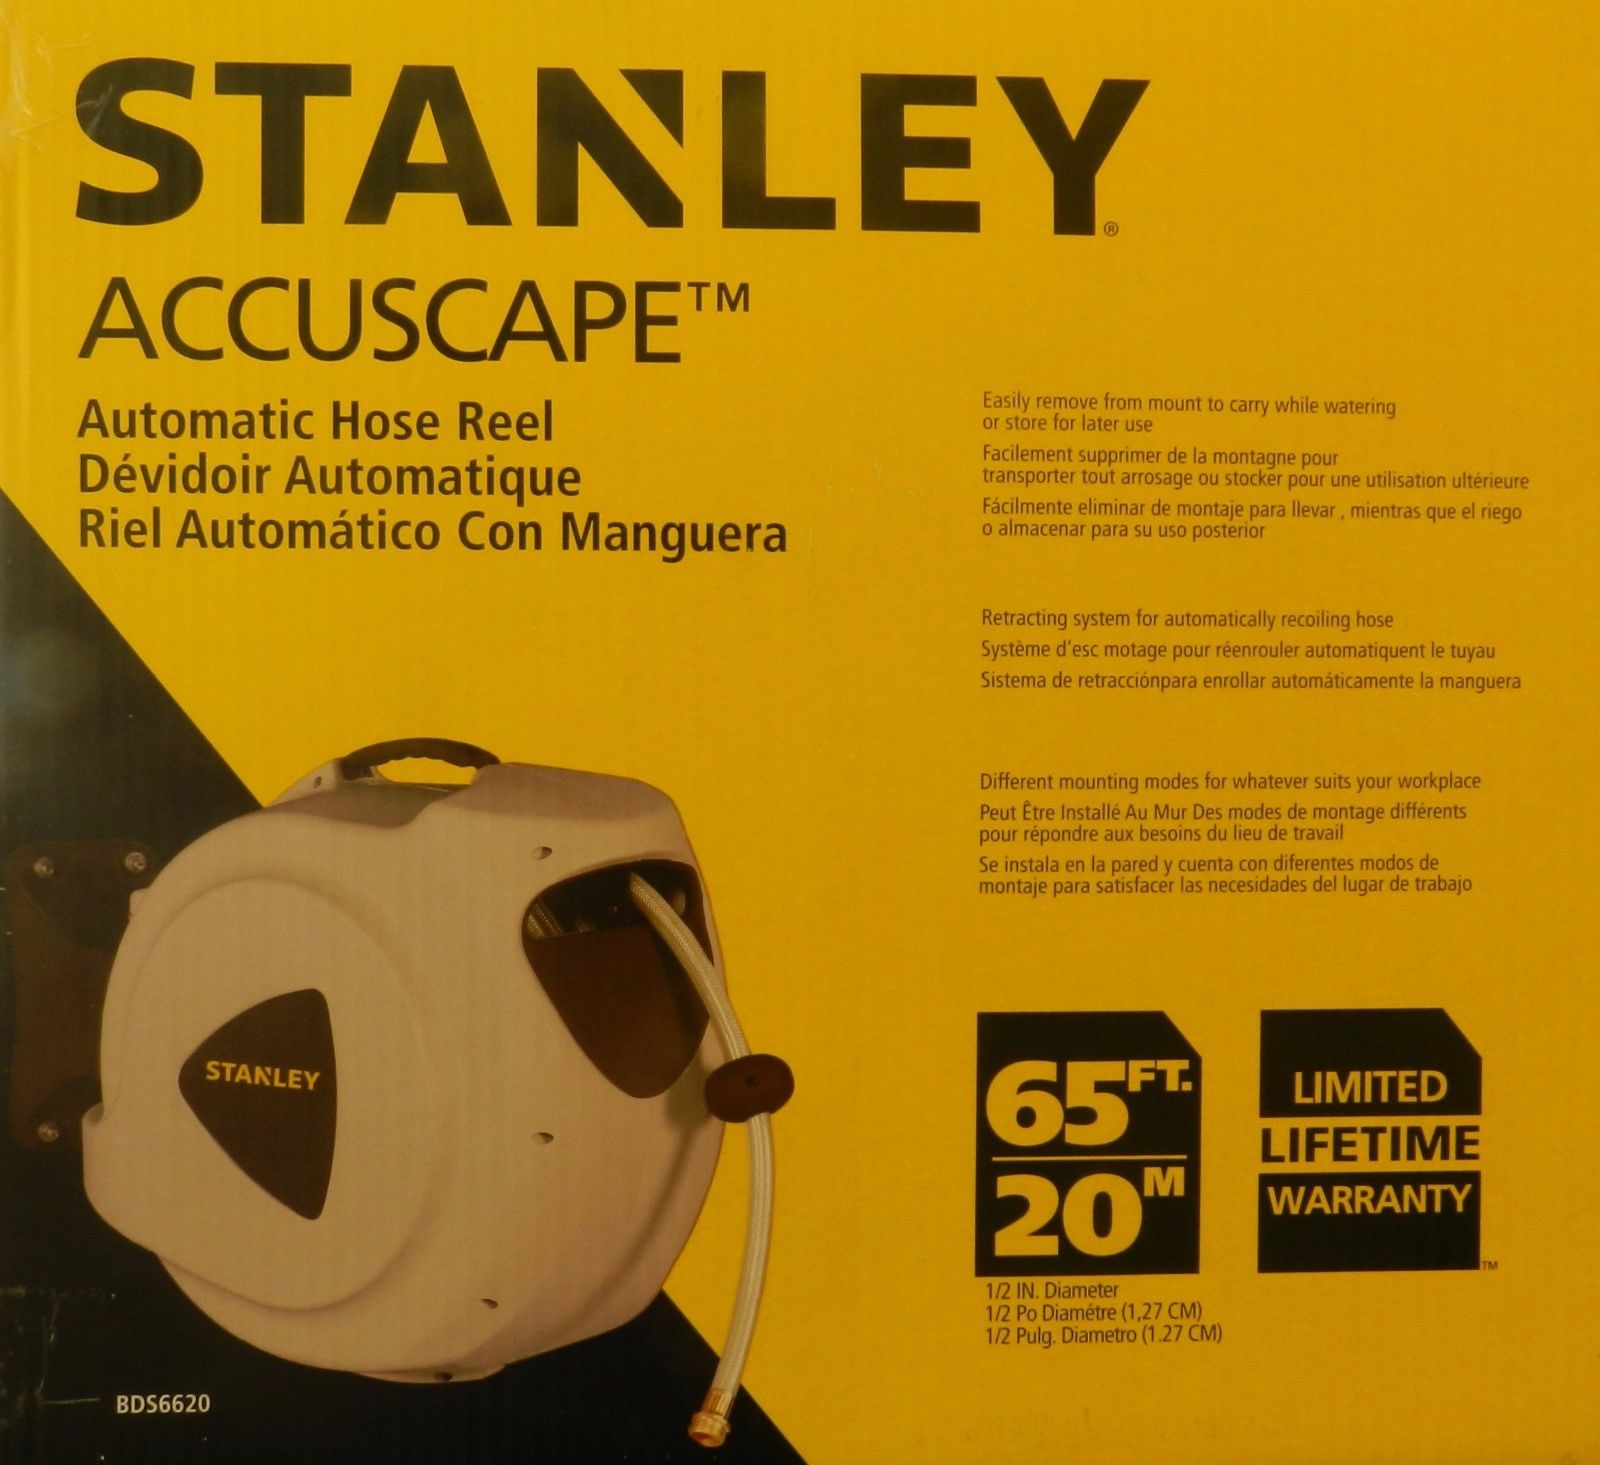 Stanley 65ft  20m Automatic Retractable Hose Reel by